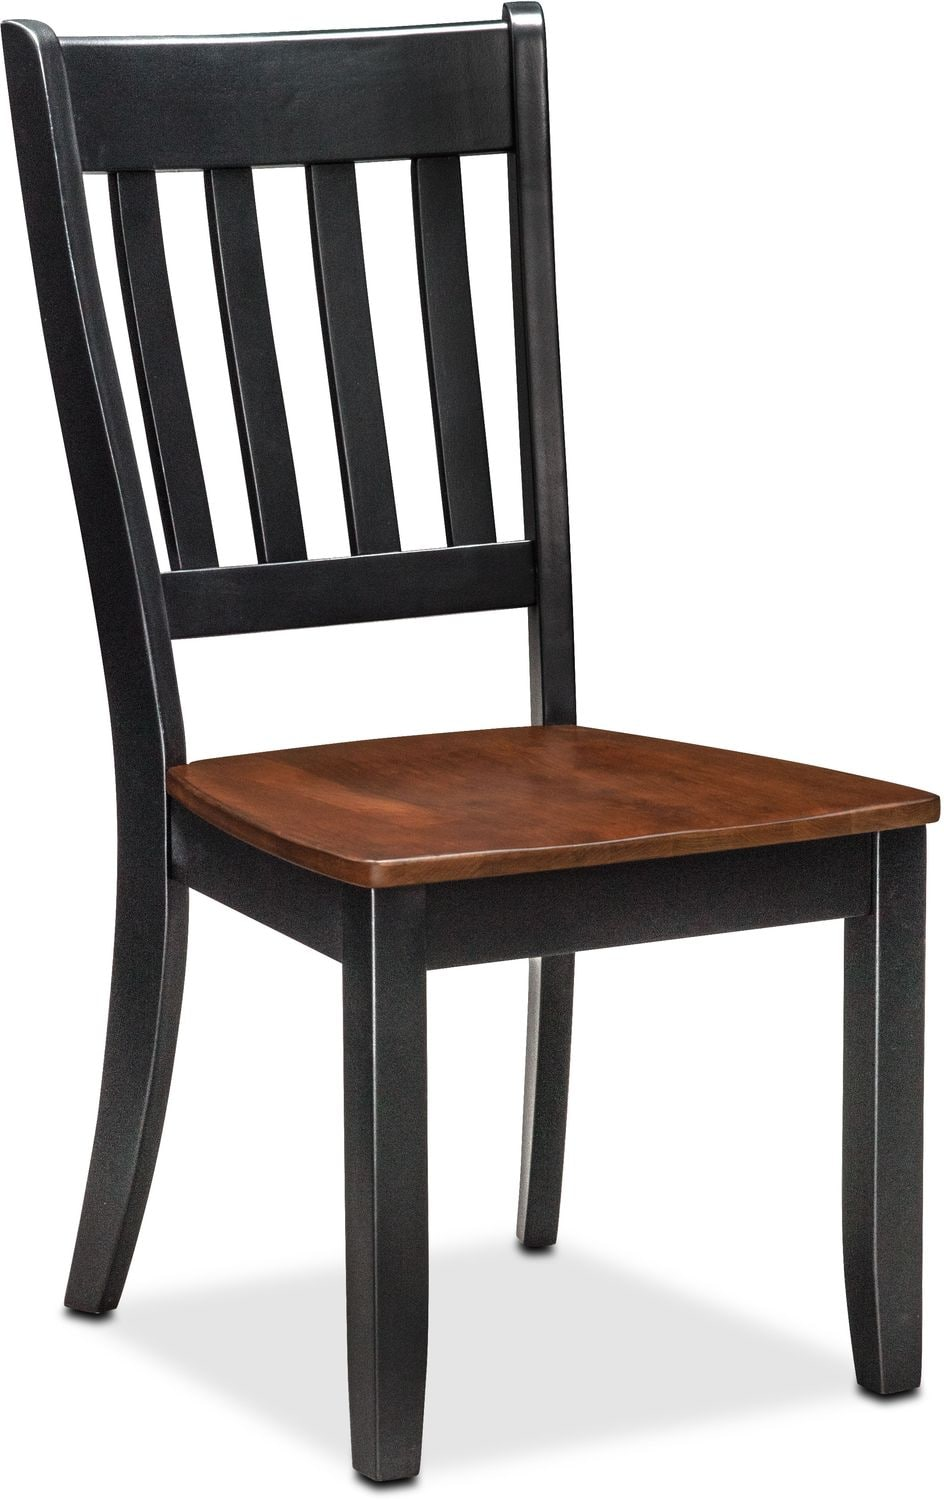 Dining Room Furniture - Nantucket Slat-Back Chair - Black and Cherry